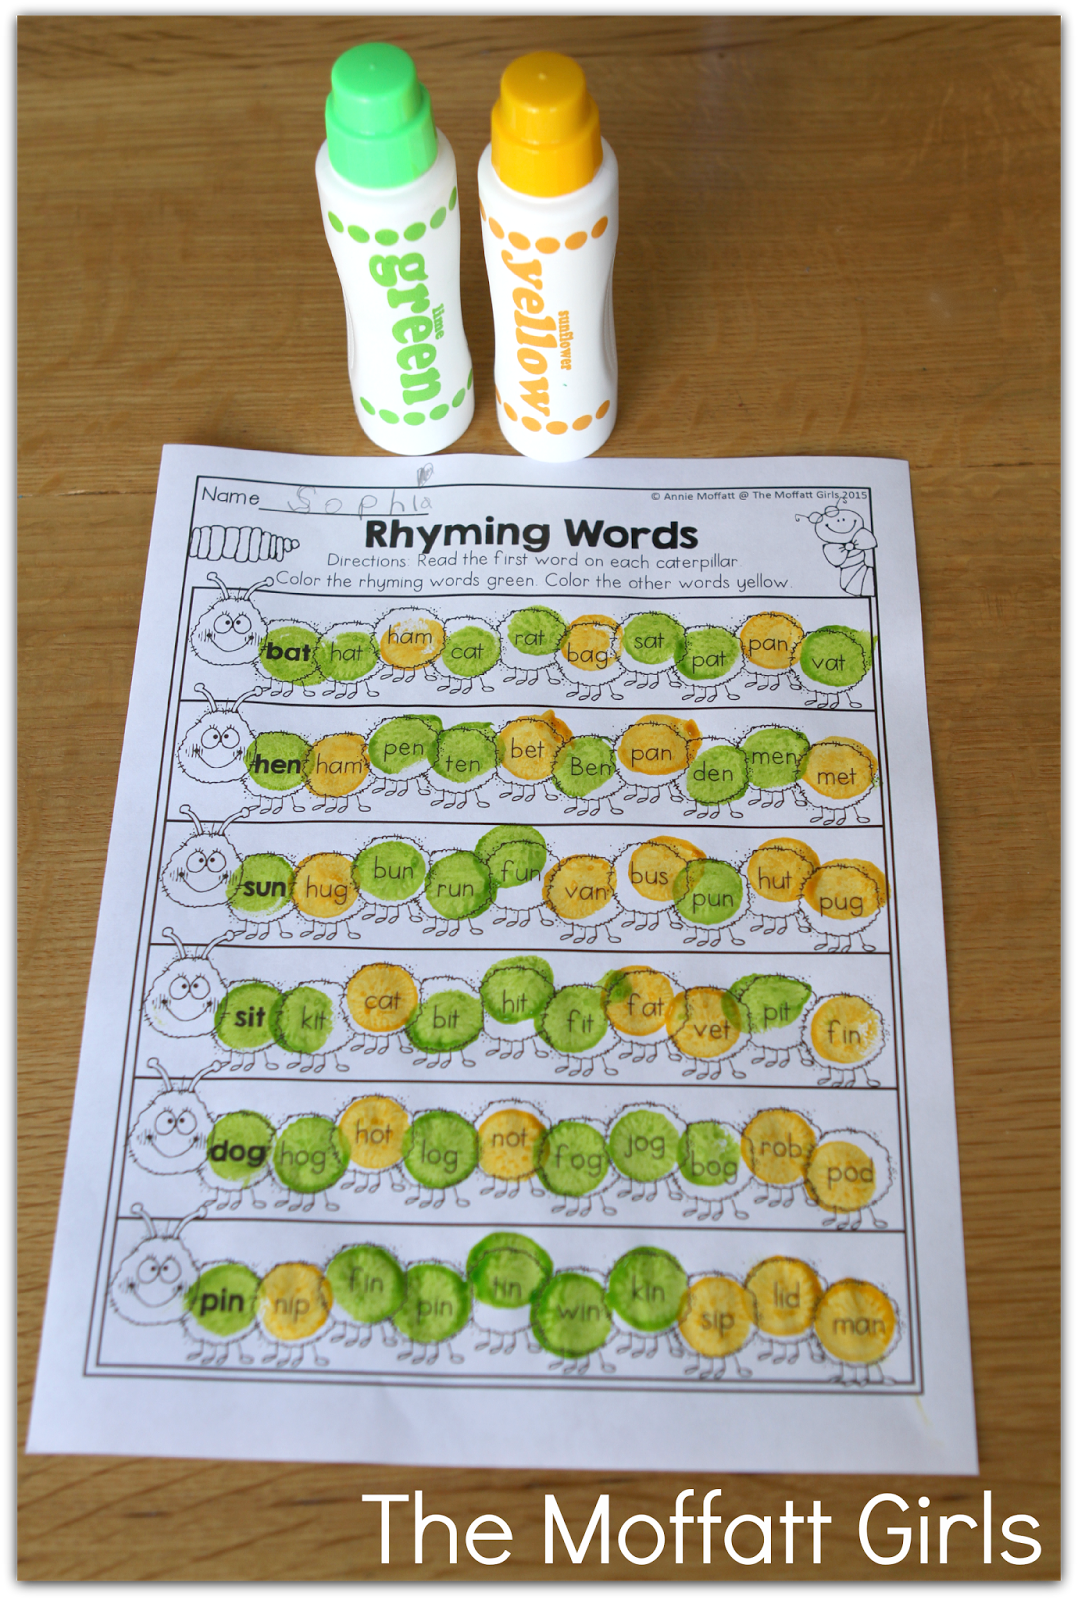 Rhyming Word Caterpillar Dot Mark The Words That Rhyme